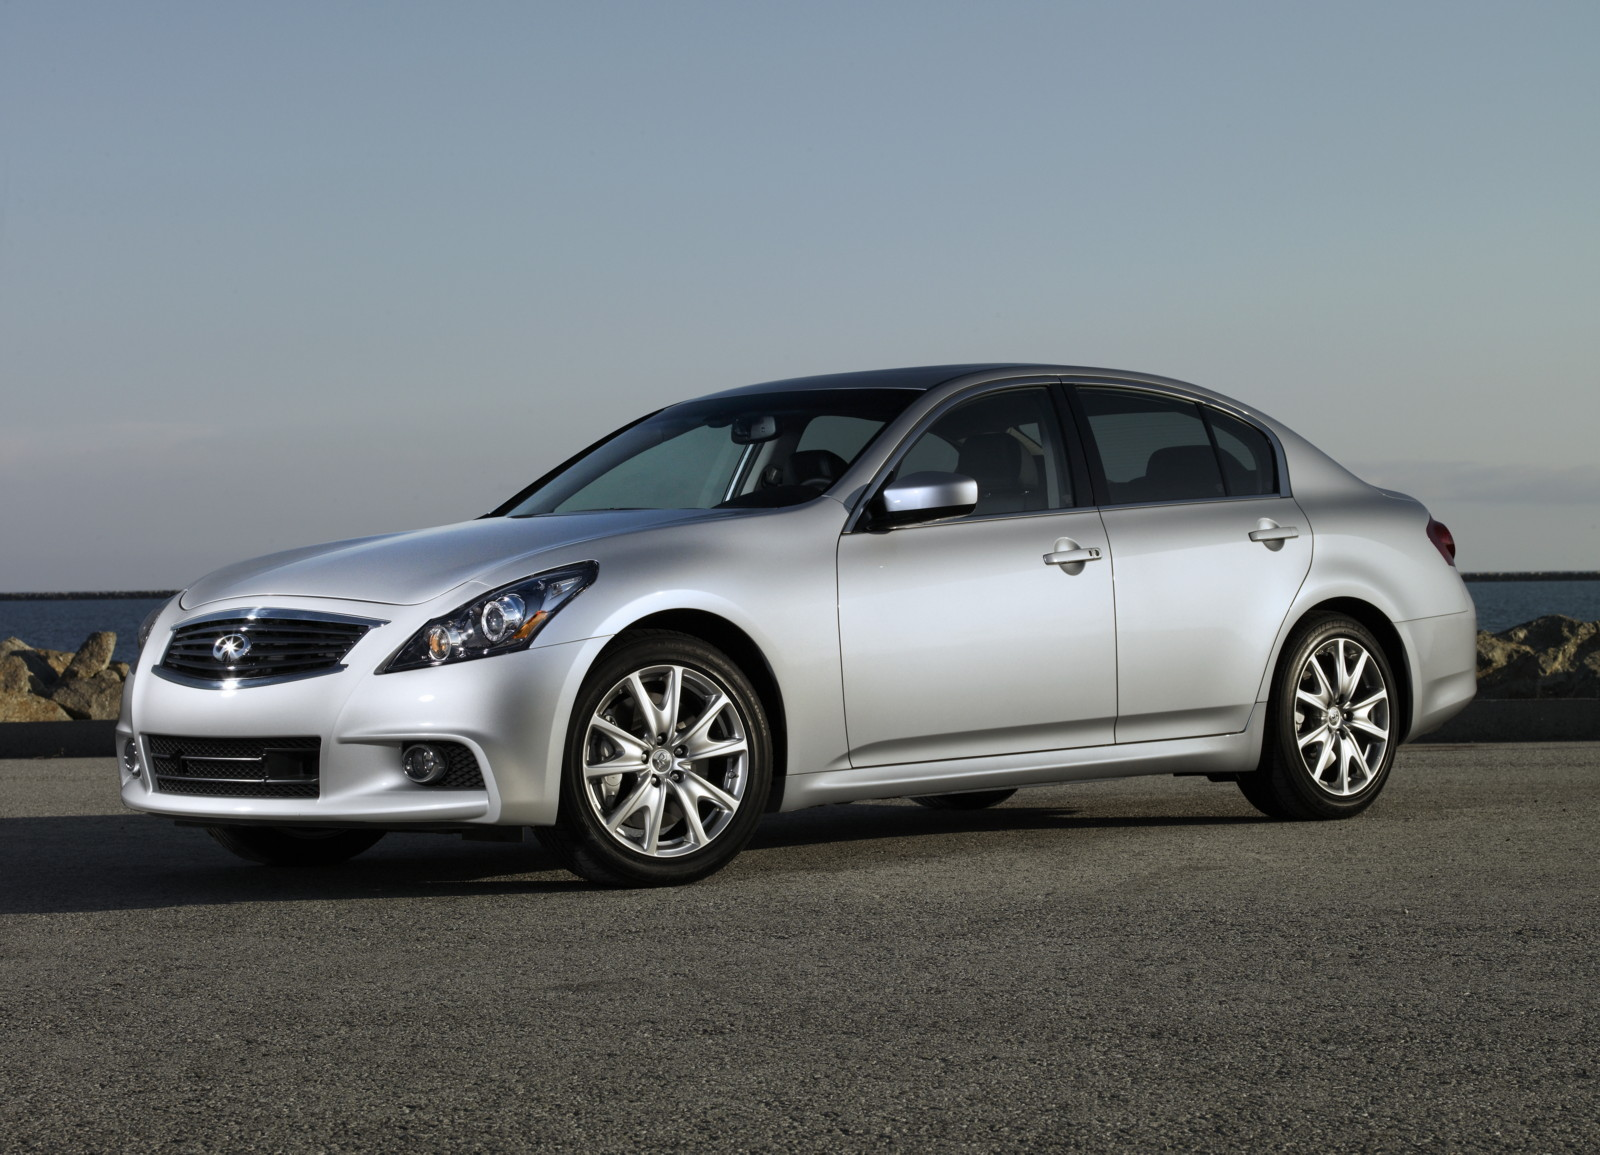 2010 infiniti g37 sedan review ratings specs prices and photos the car connection. Black Bedroom Furniture Sets. Home Design Ideas